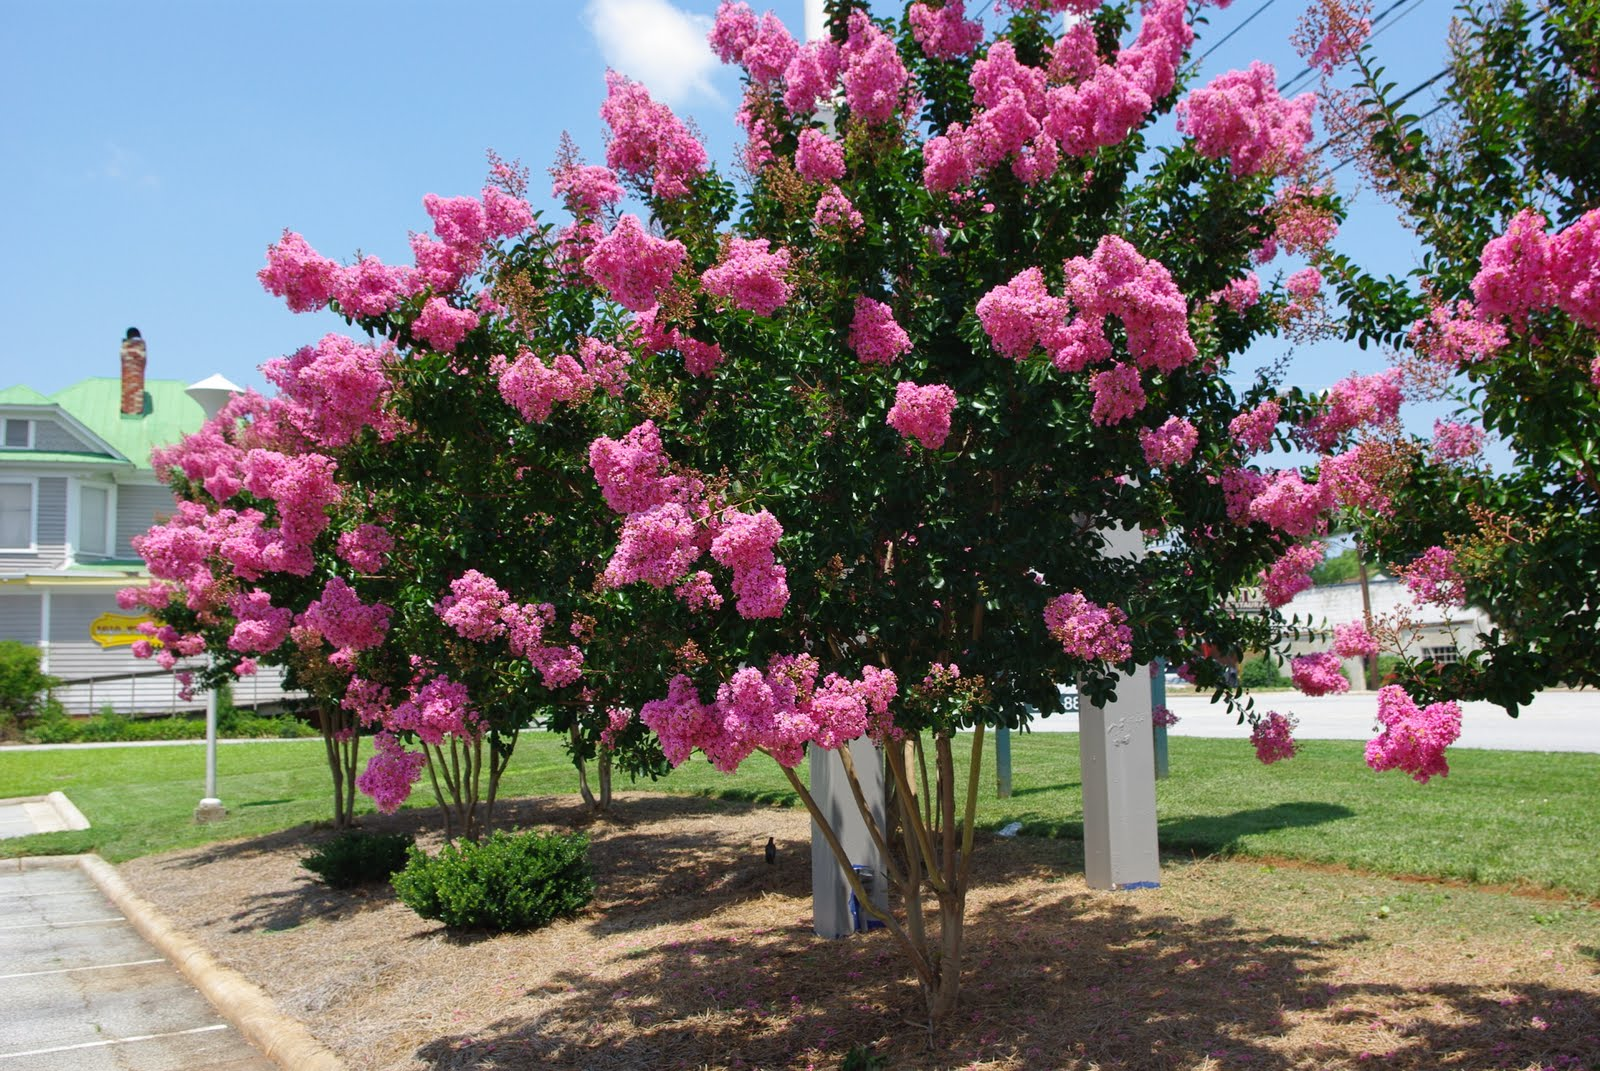 Crepe myrtle crepe myrtle trees the tree center for Tree with red flowers